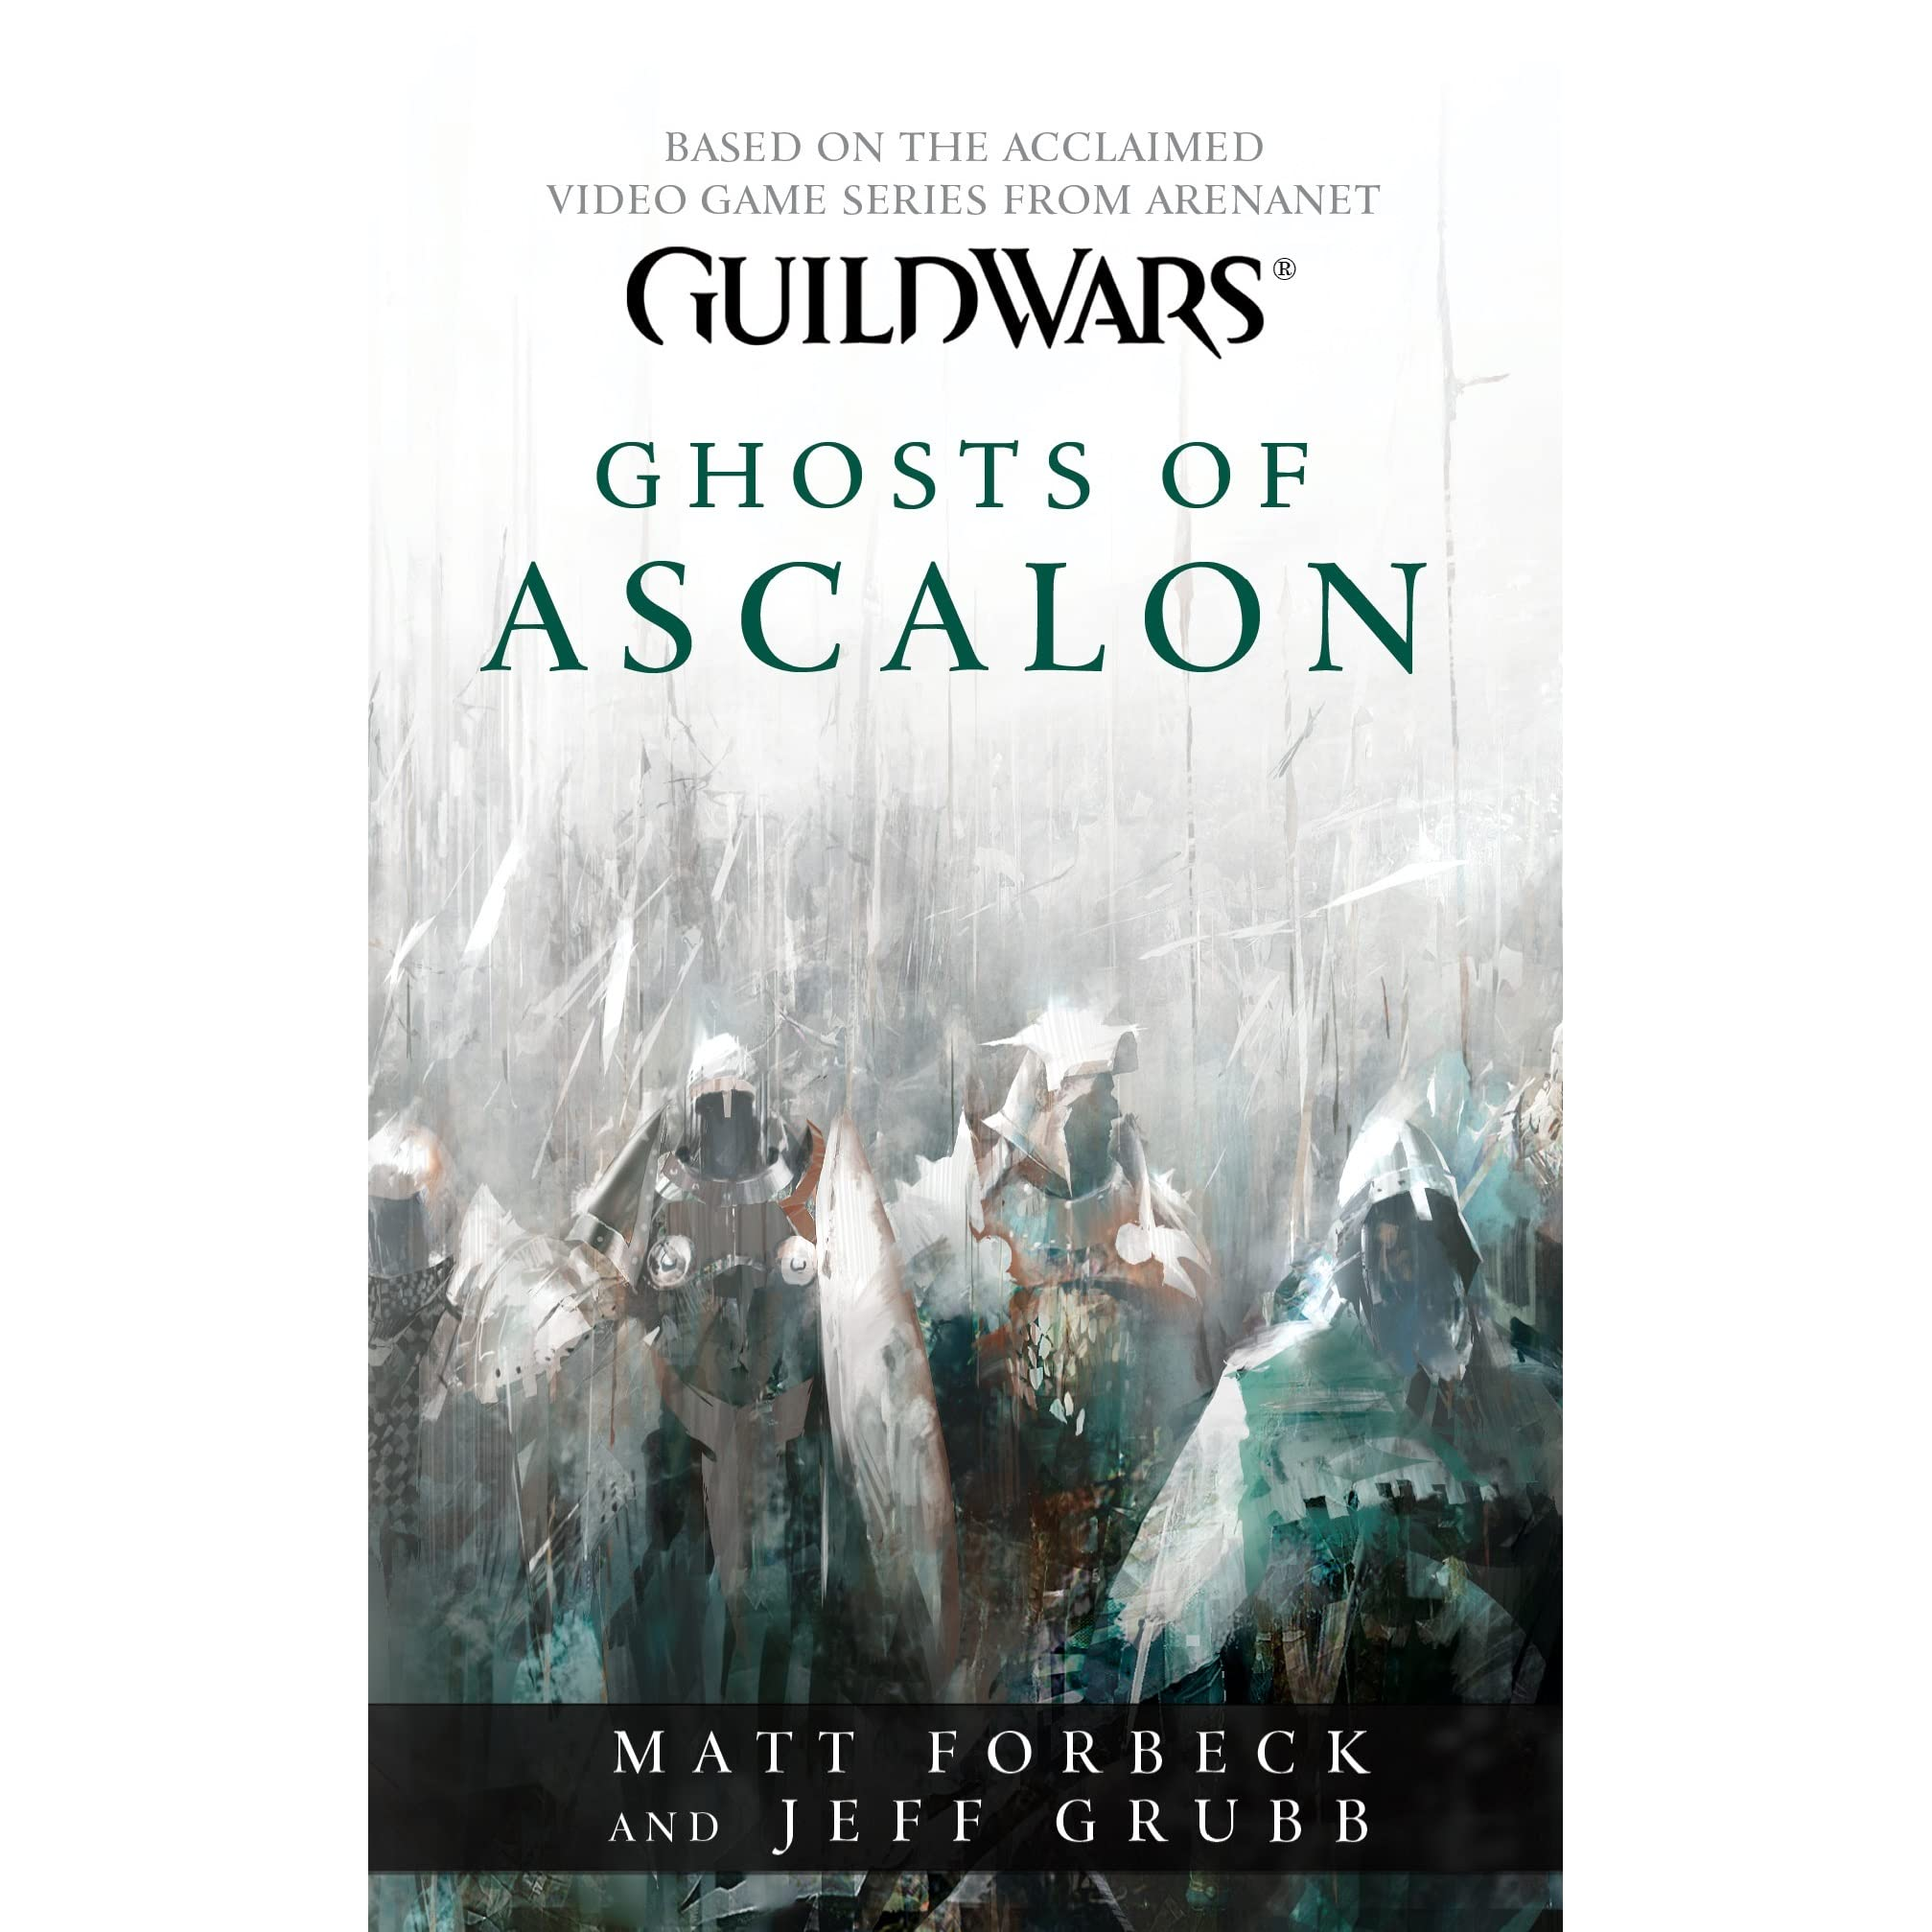 Ghosts of Ascalon (Guild Wars, #1) by Matt Forbeck